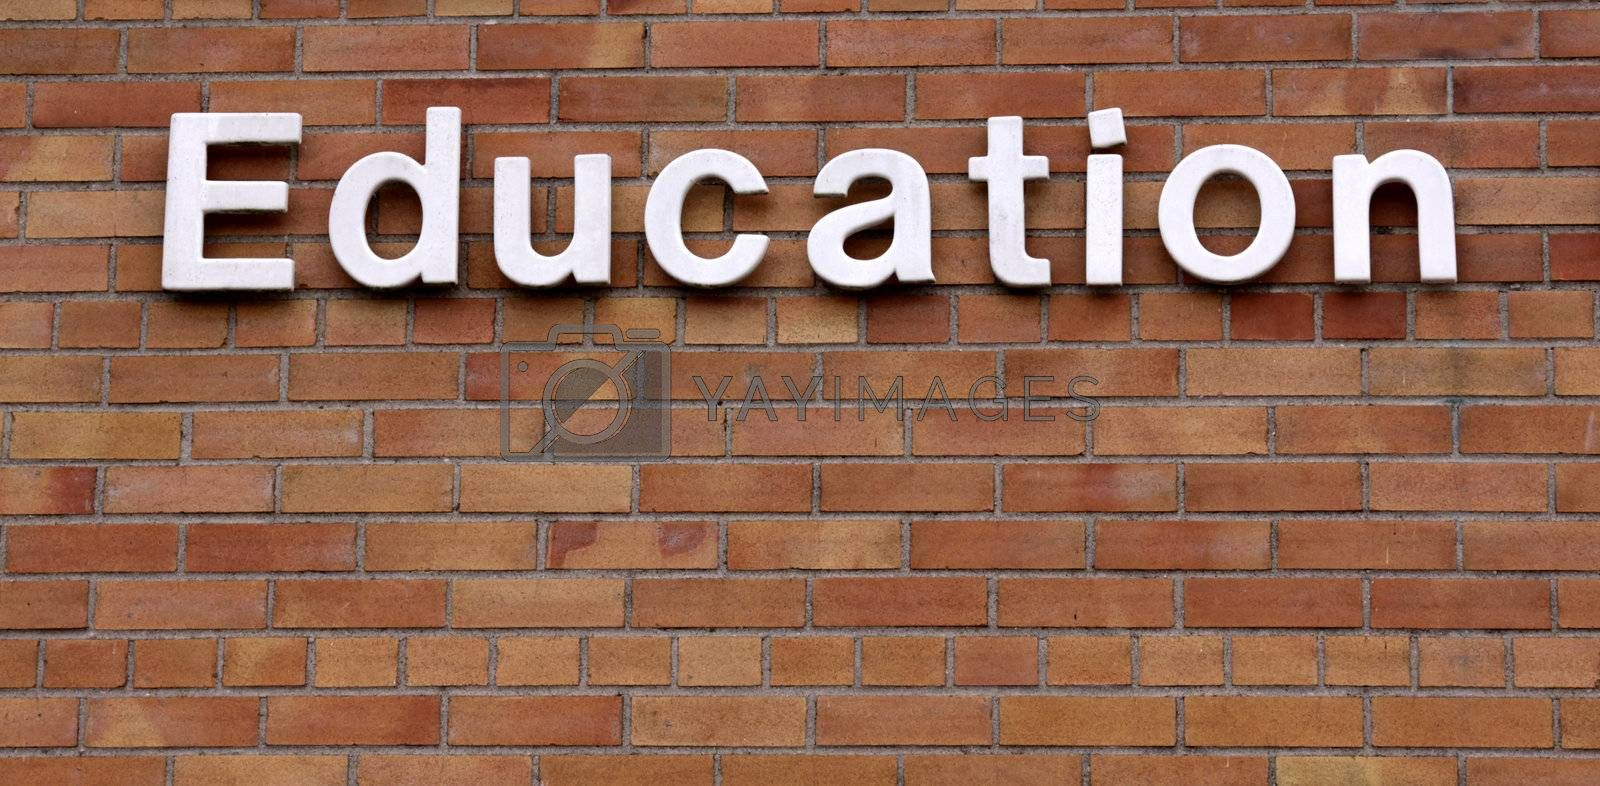 The word education on a brick wall.